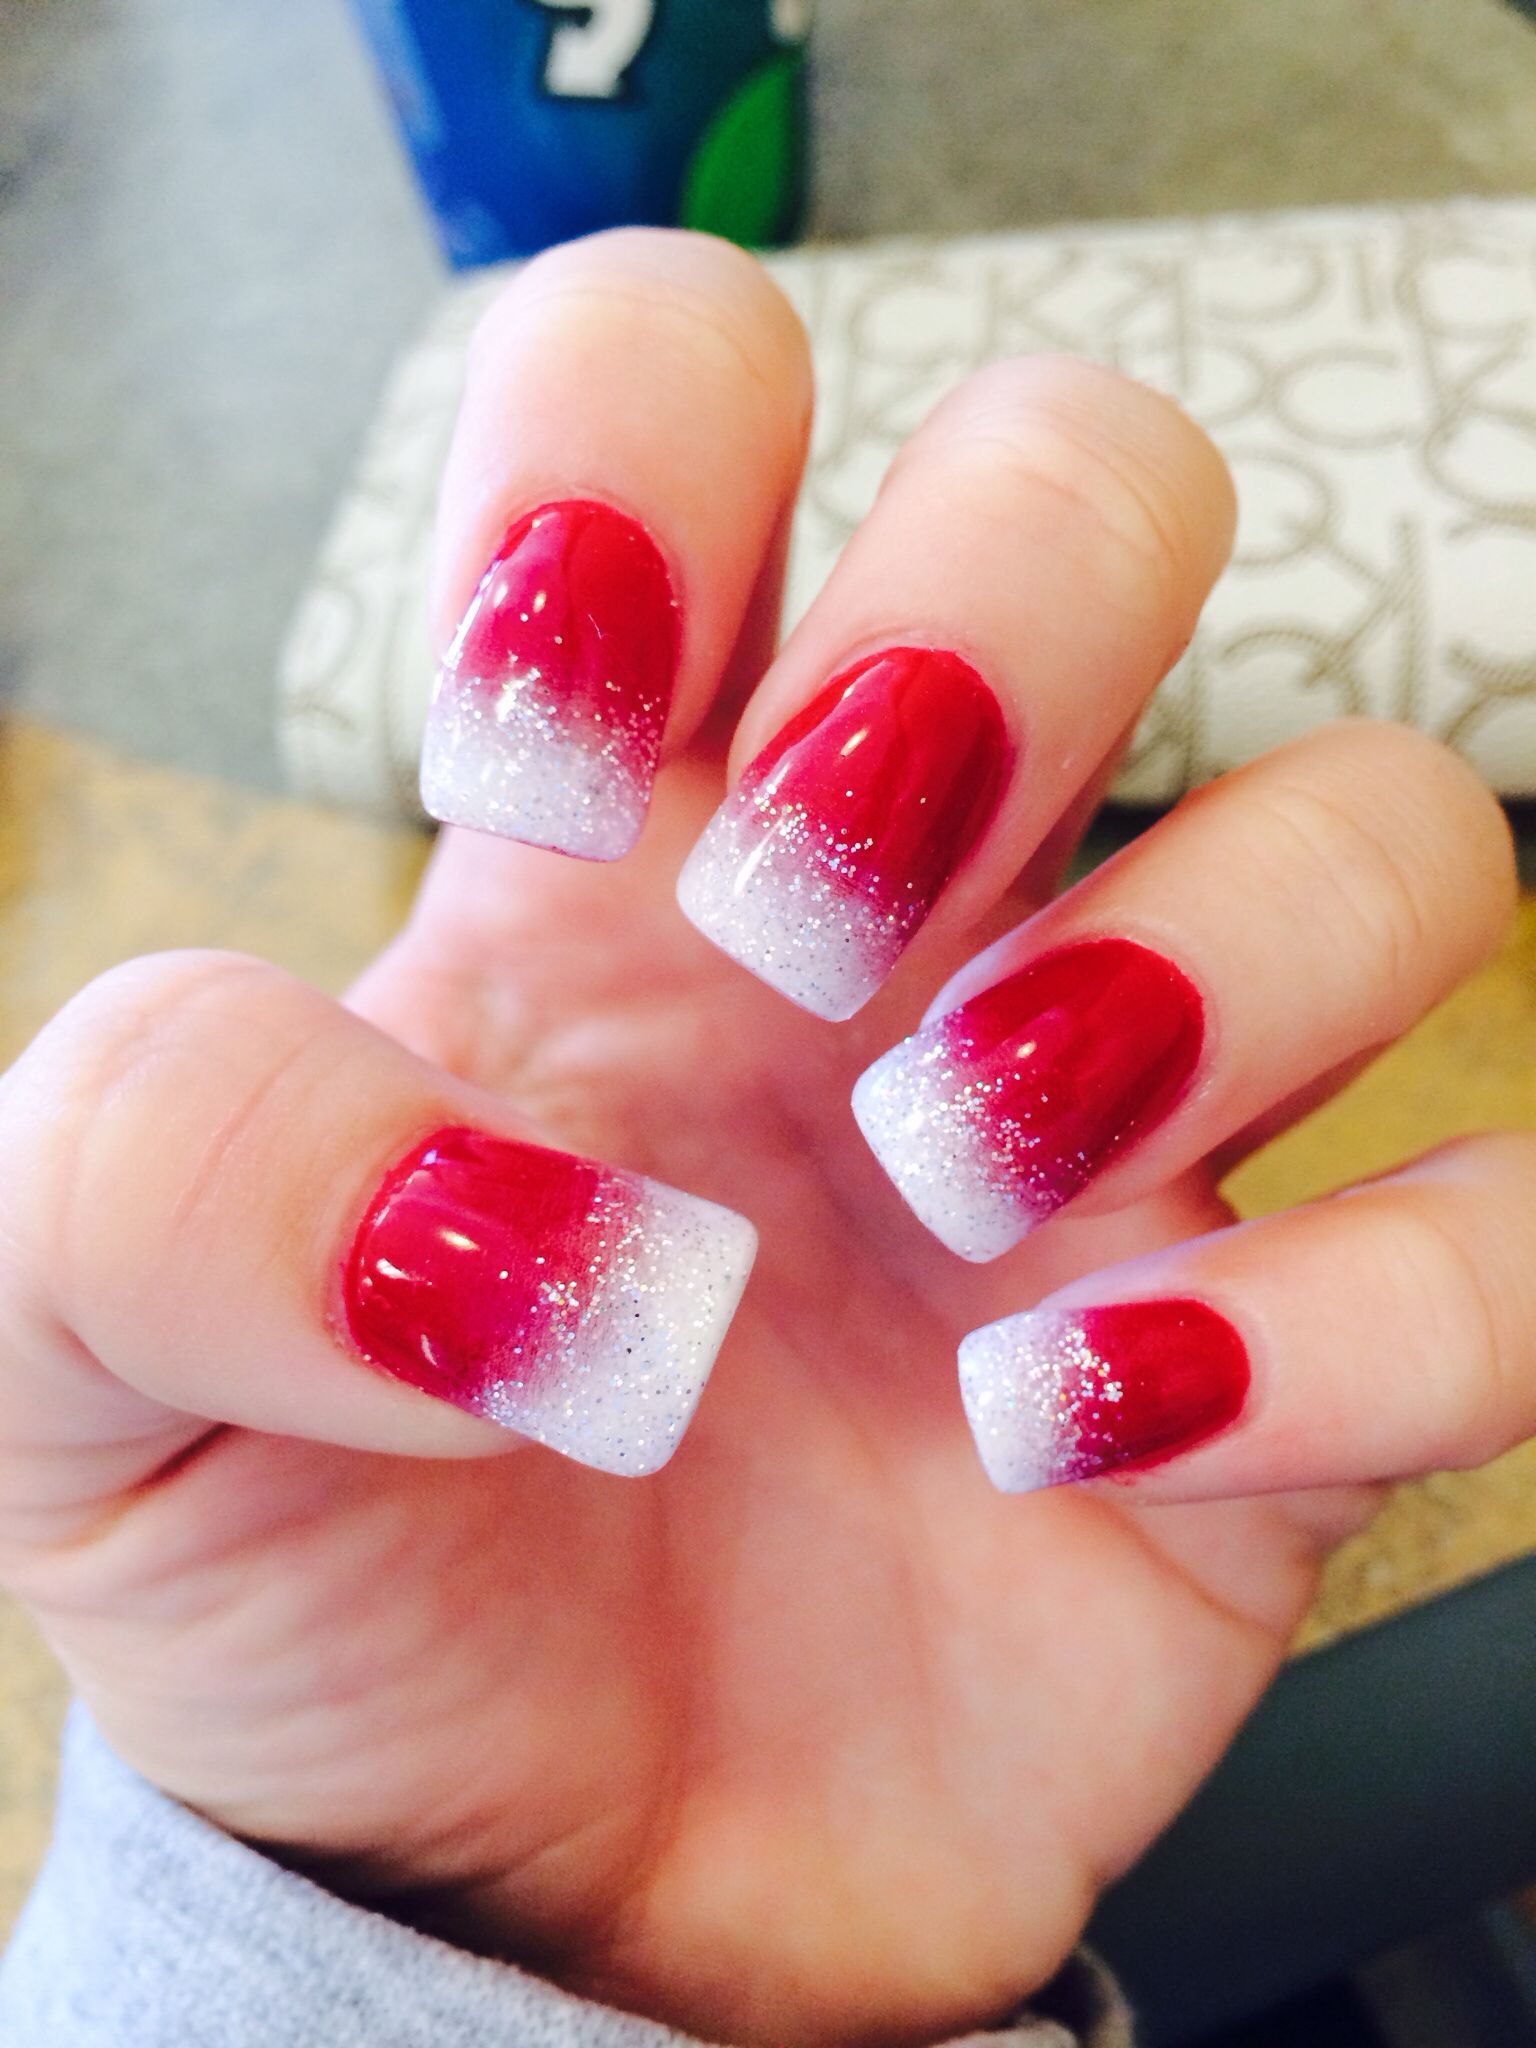 red nails with white ombr and sparkle at the tip